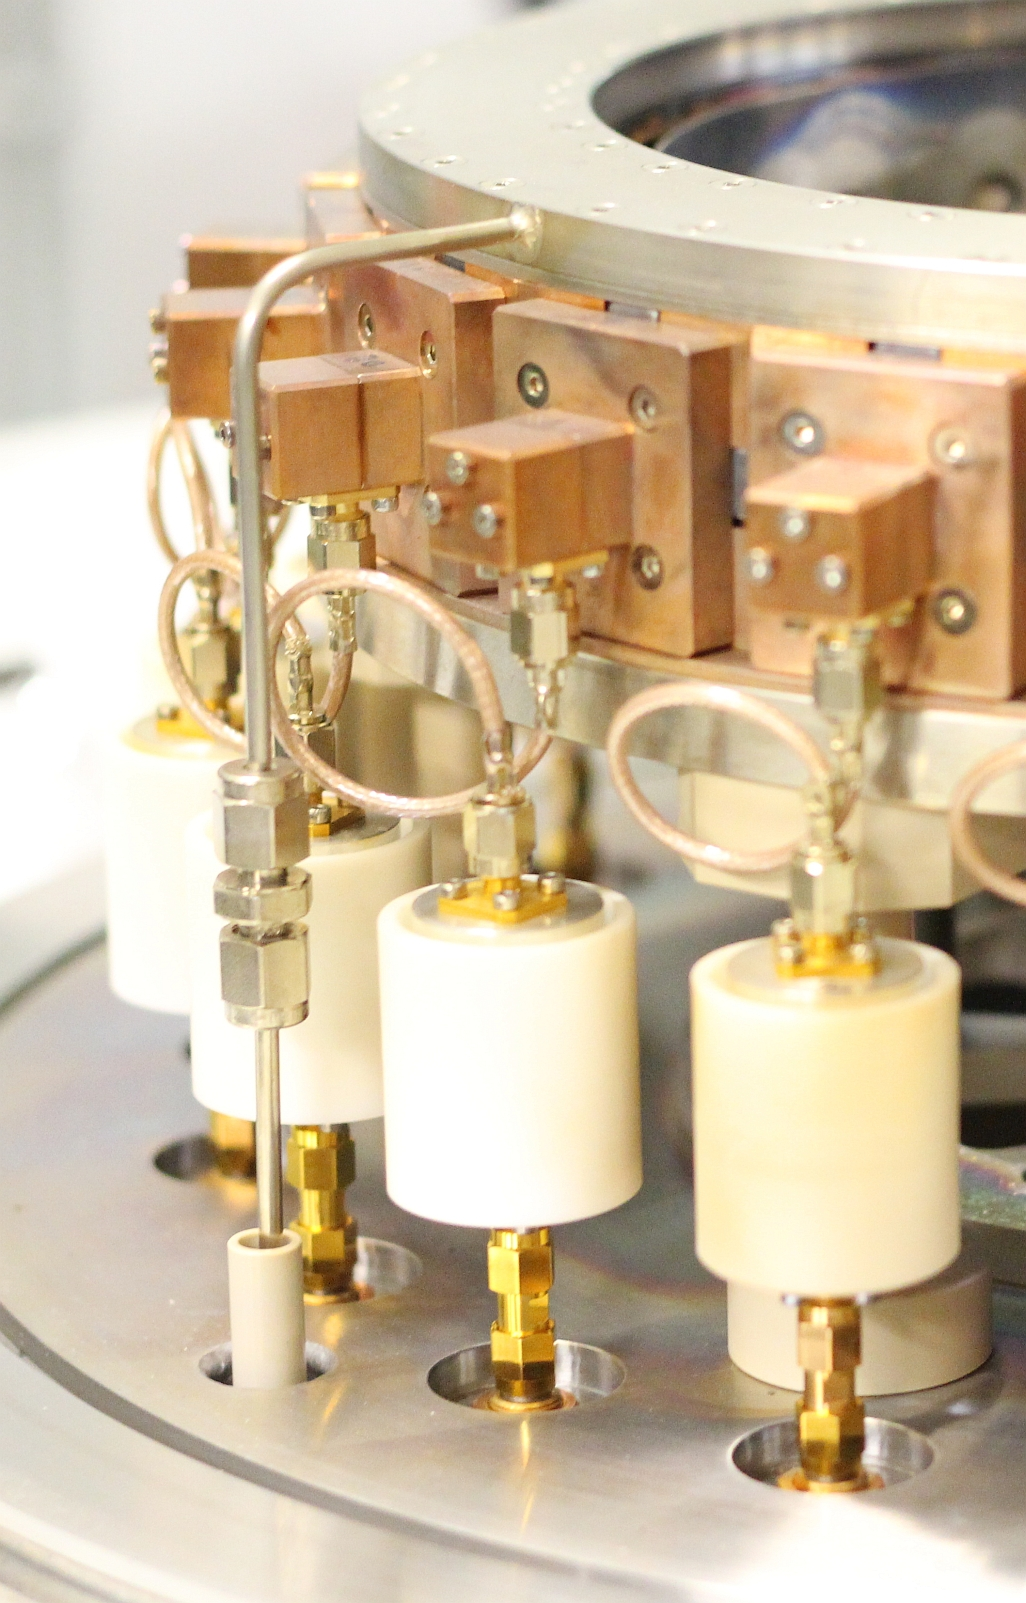 Close-up of a 20-source circular array of a multi beam sputter deposition system